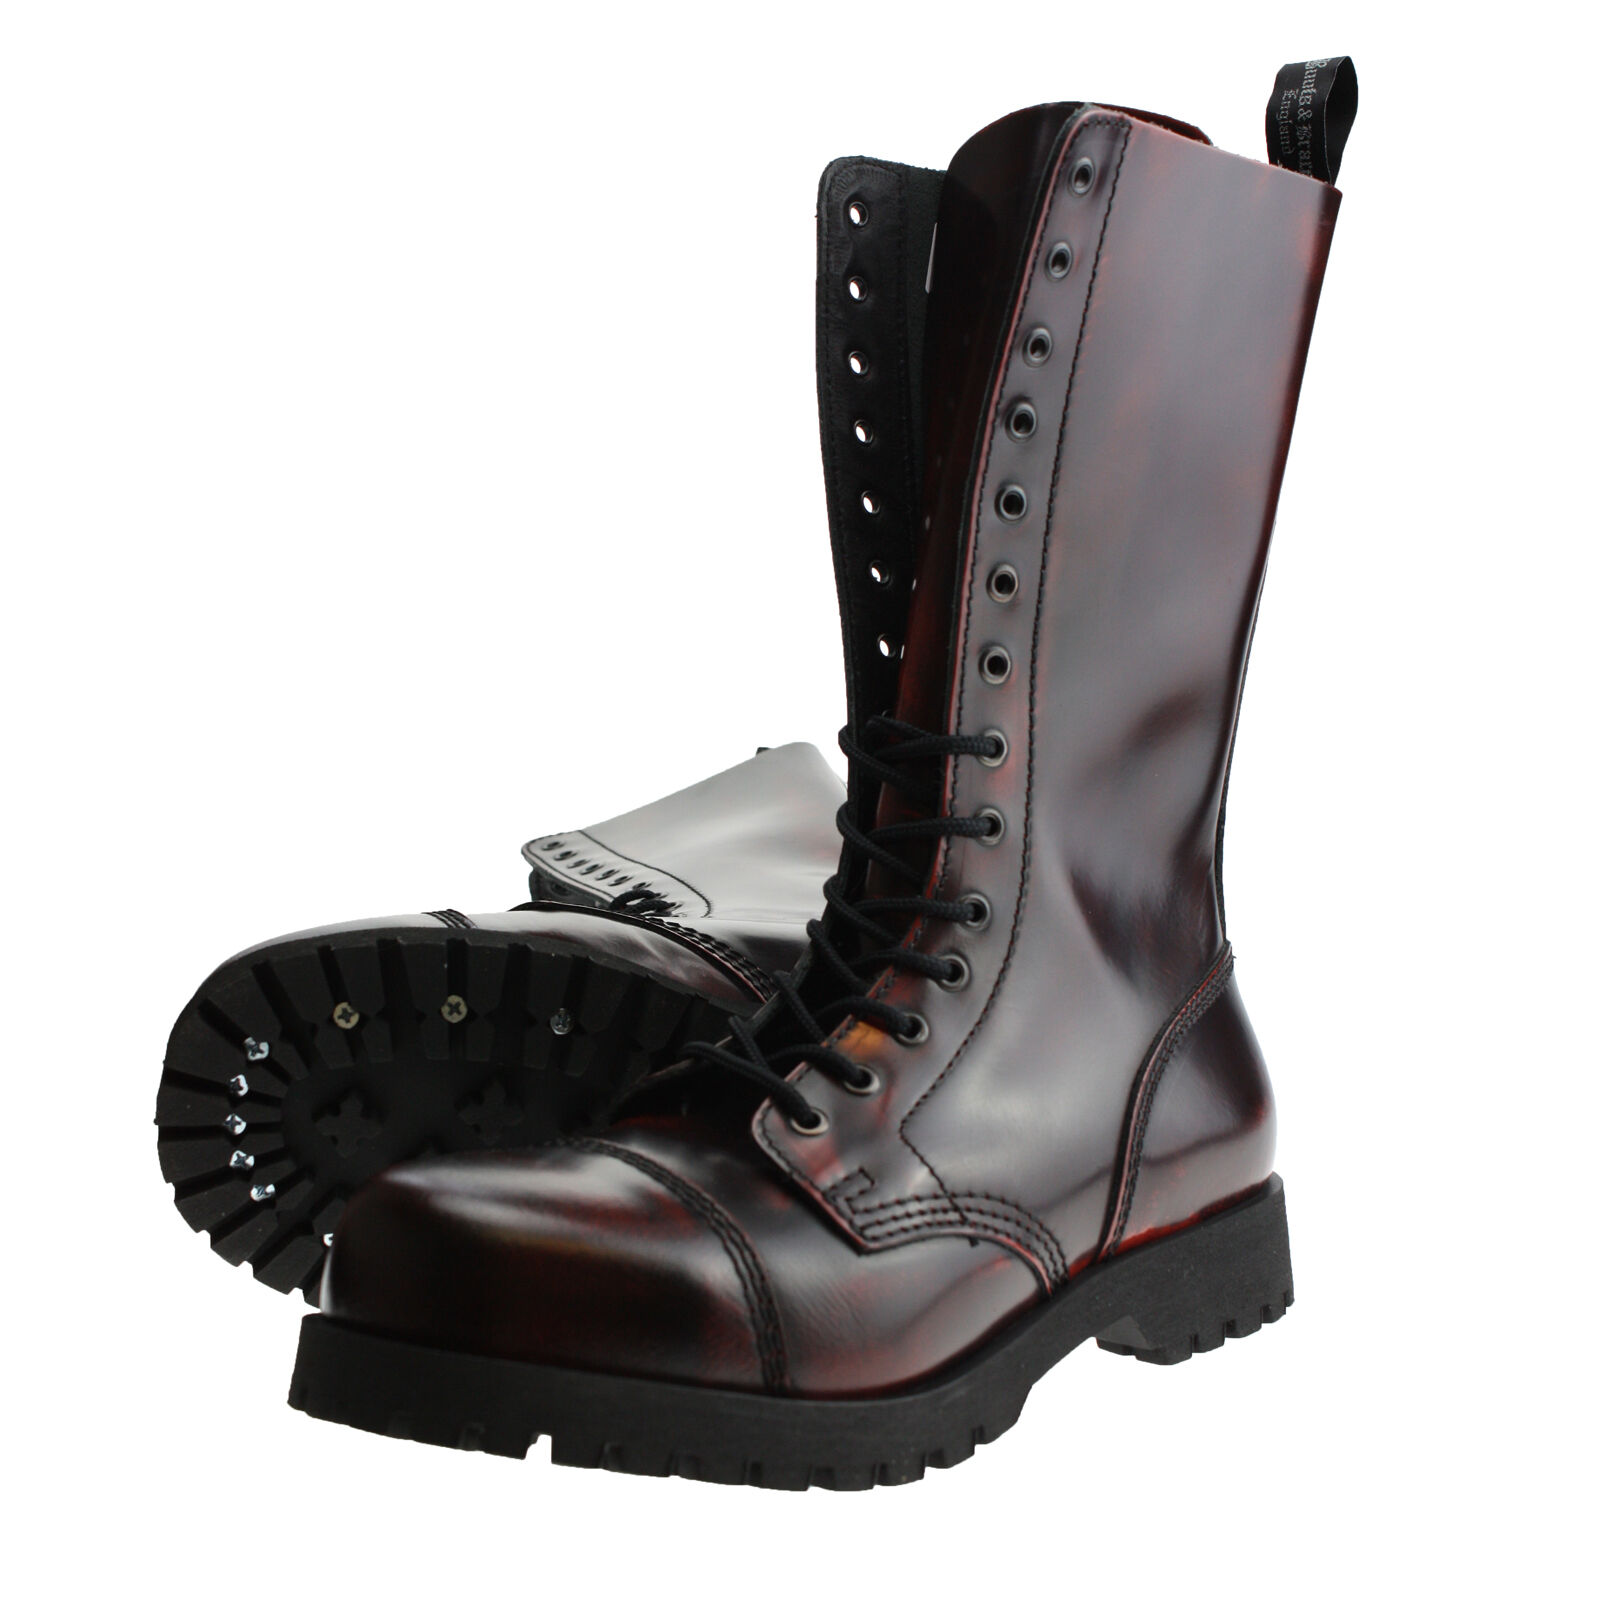 e35f893e3b5 Boots and braces 14 agujeros Burgundy Rub-off Springer botas Rangers rojo  negro